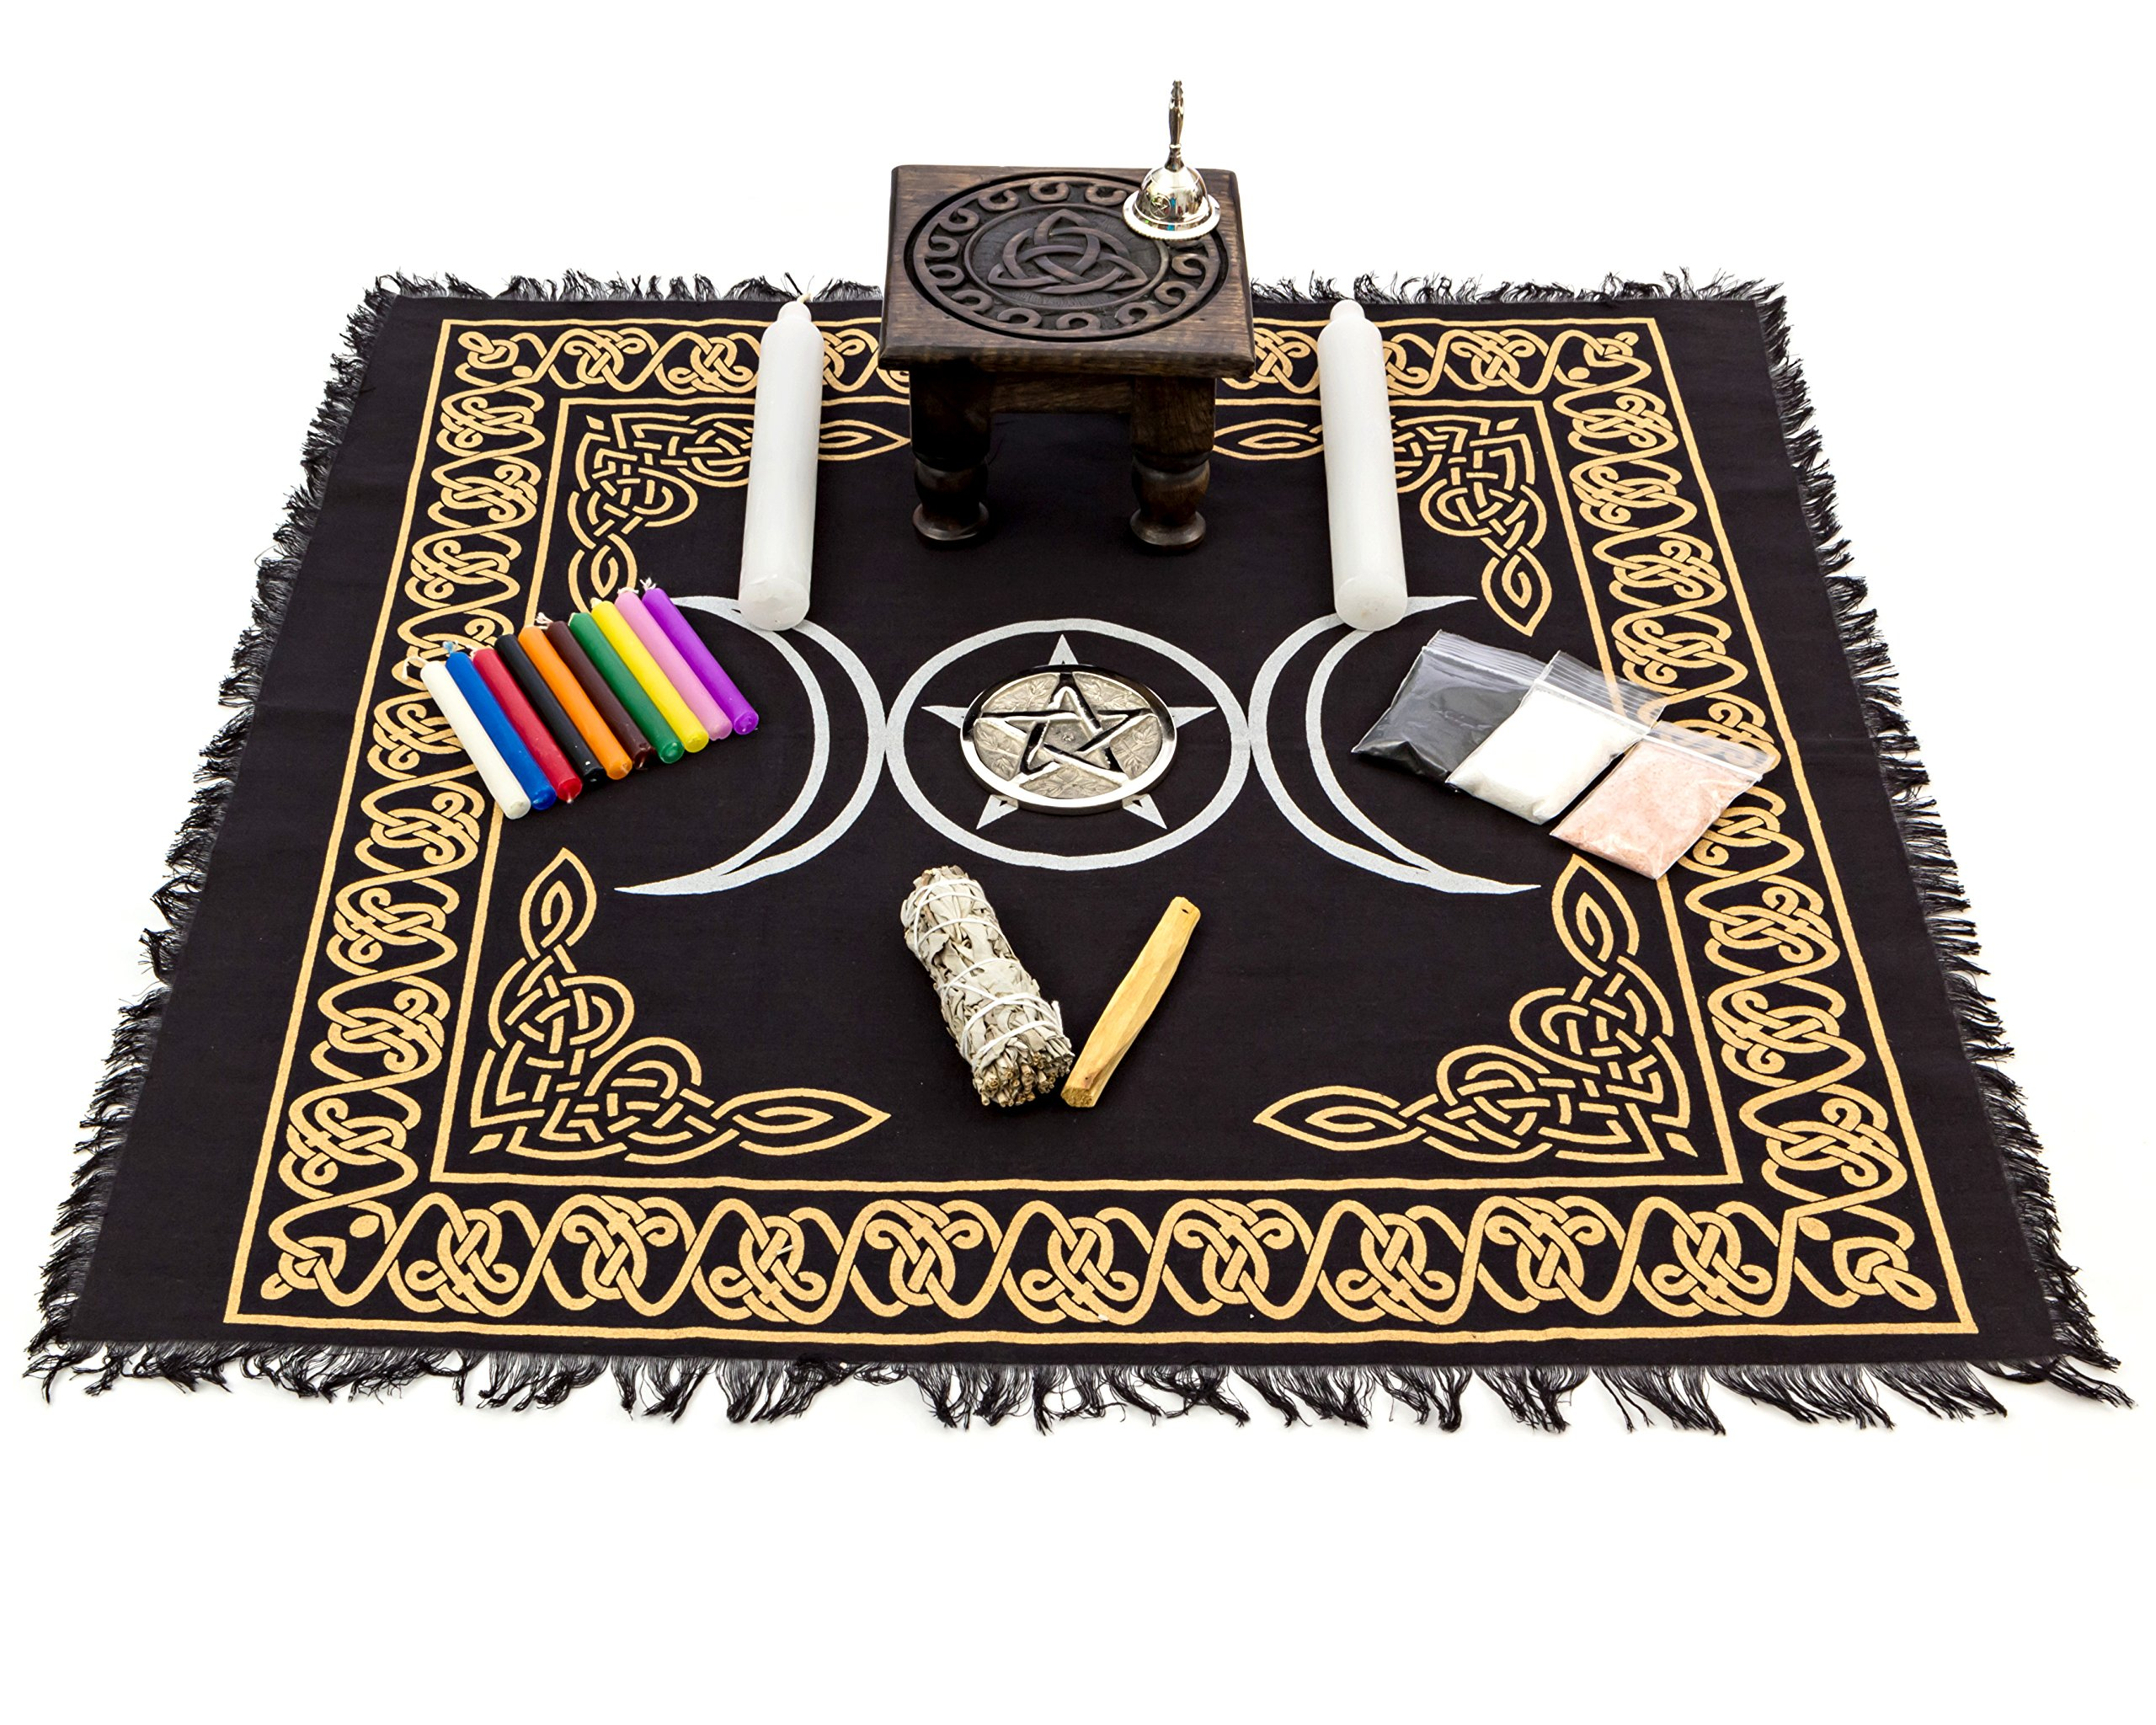 Alternative Imagination Deluxe Wiccan Altar Supply Kit Featuring Triquetra Altar Table by Alternative Imagination